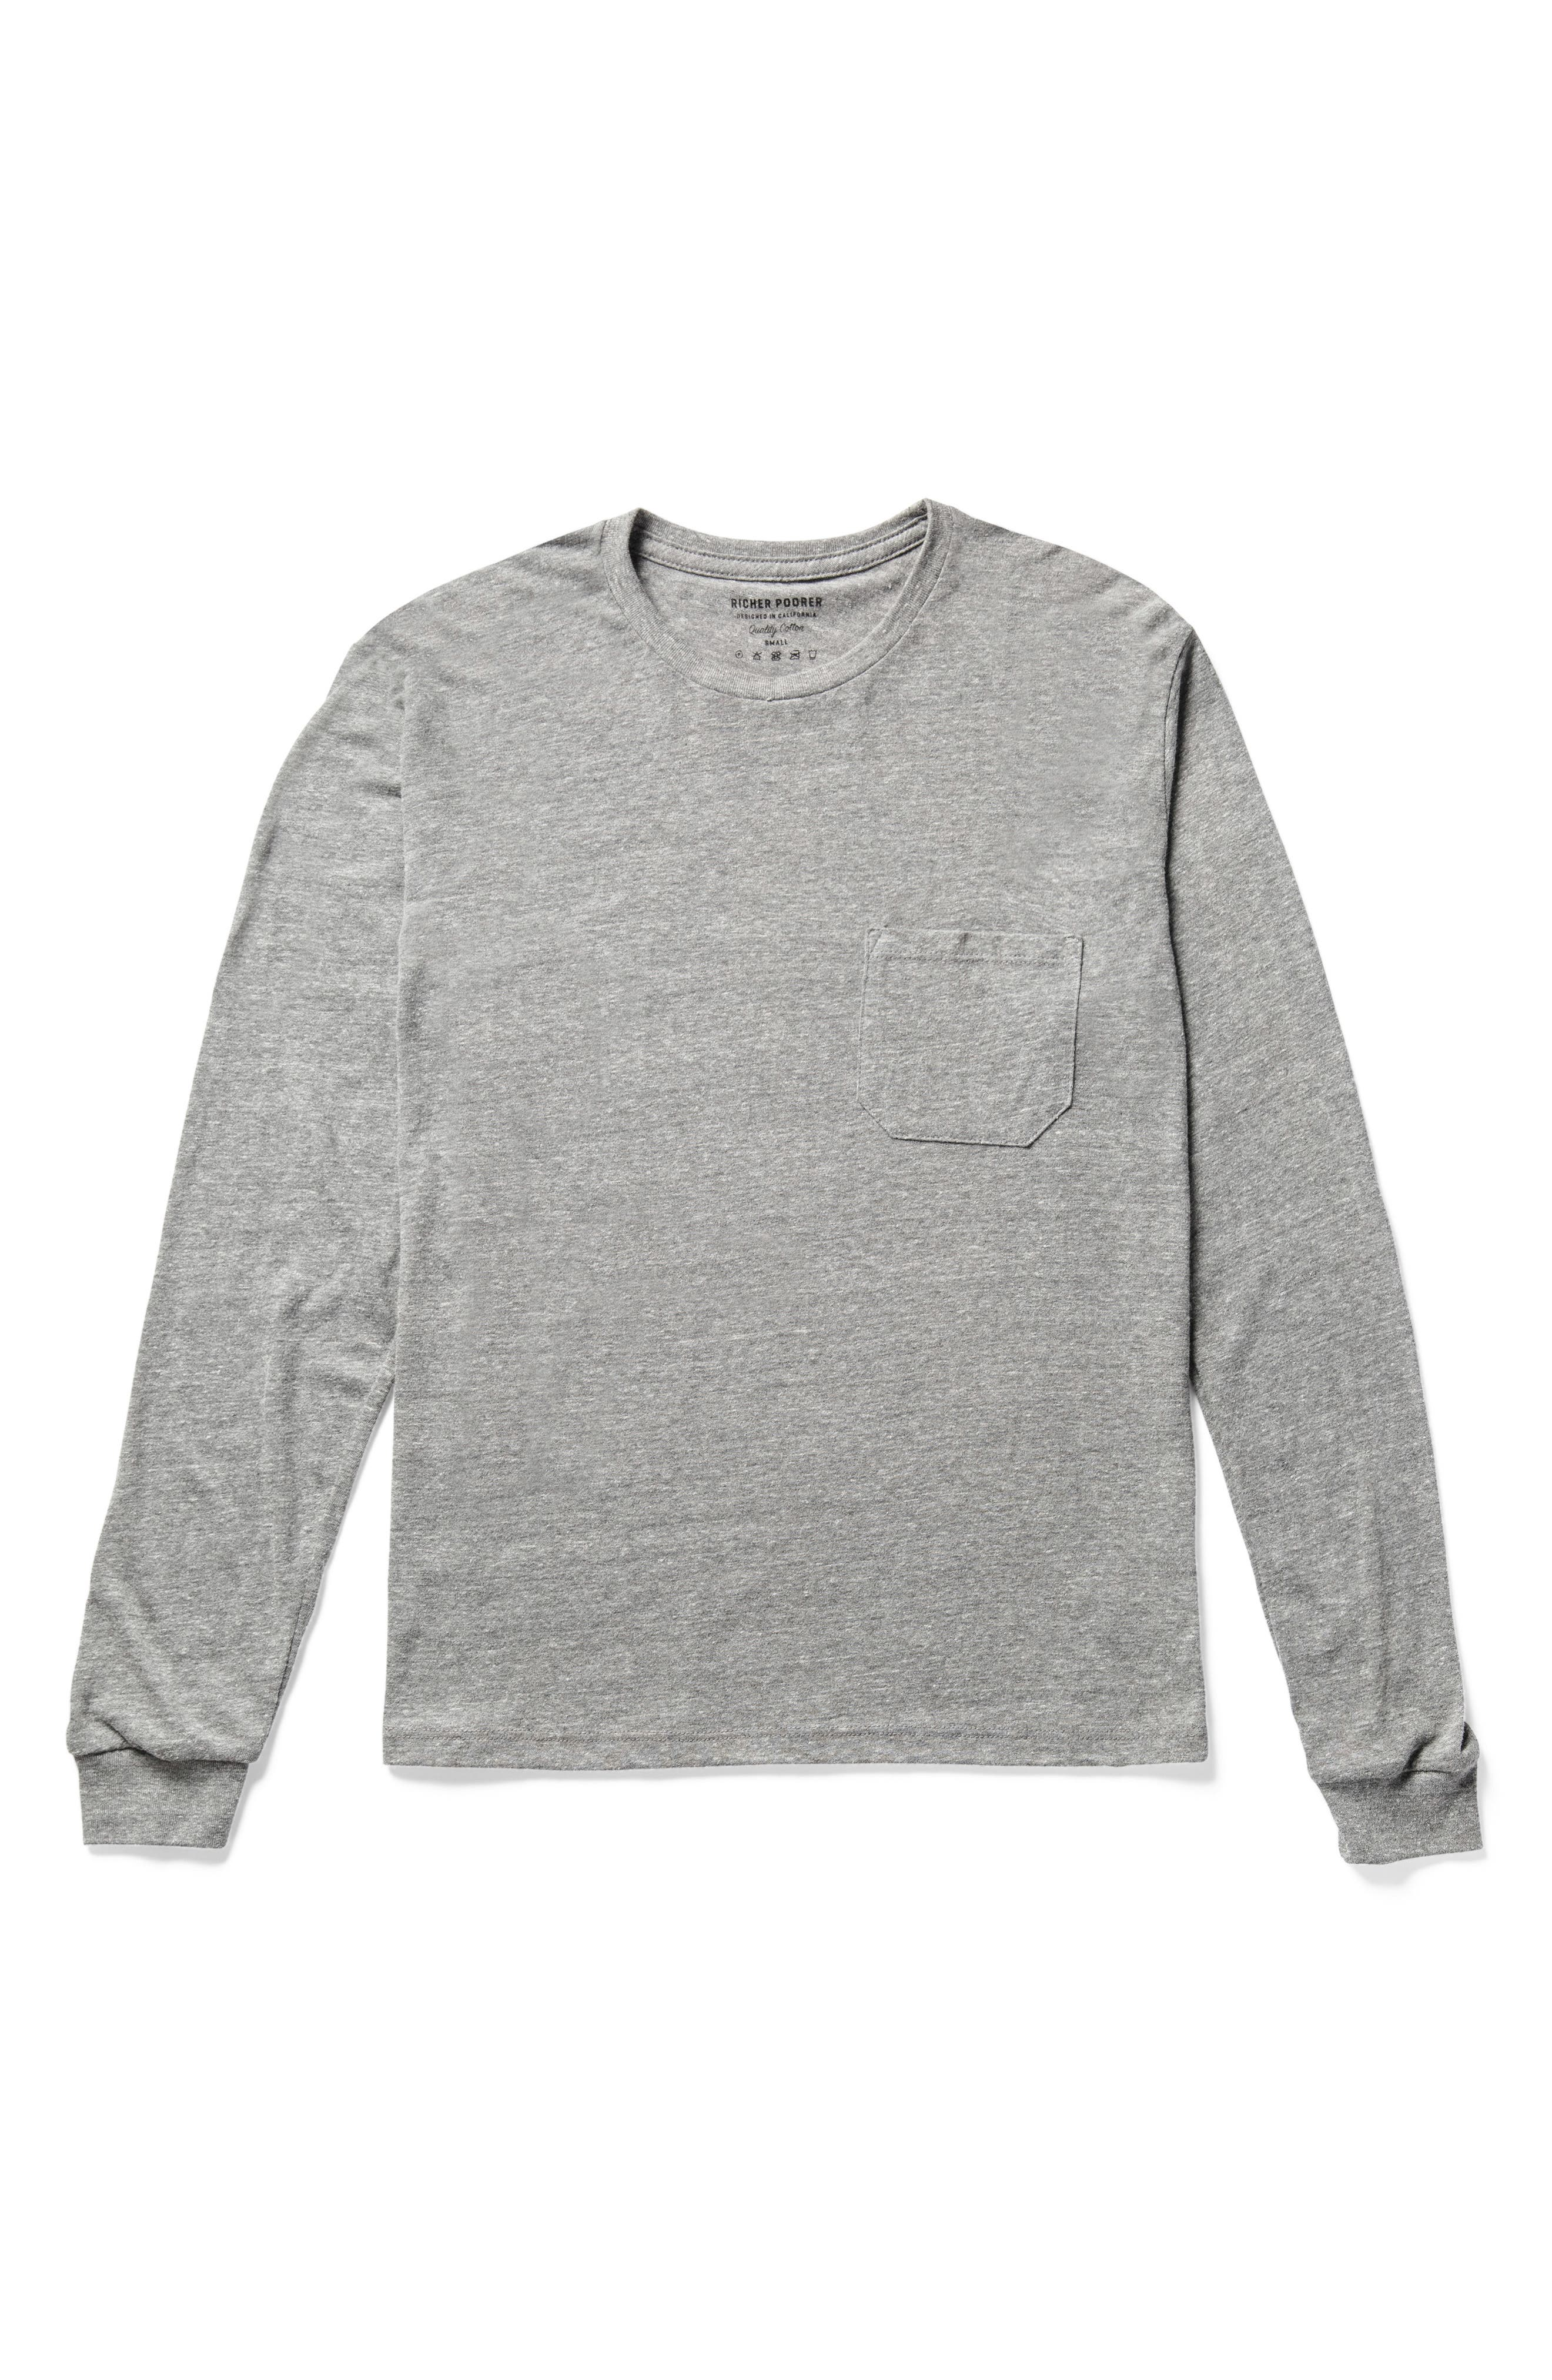 RICHER POORER, Long Sleeve Pocket Tee, Alternate thumbnail 3, color, 028